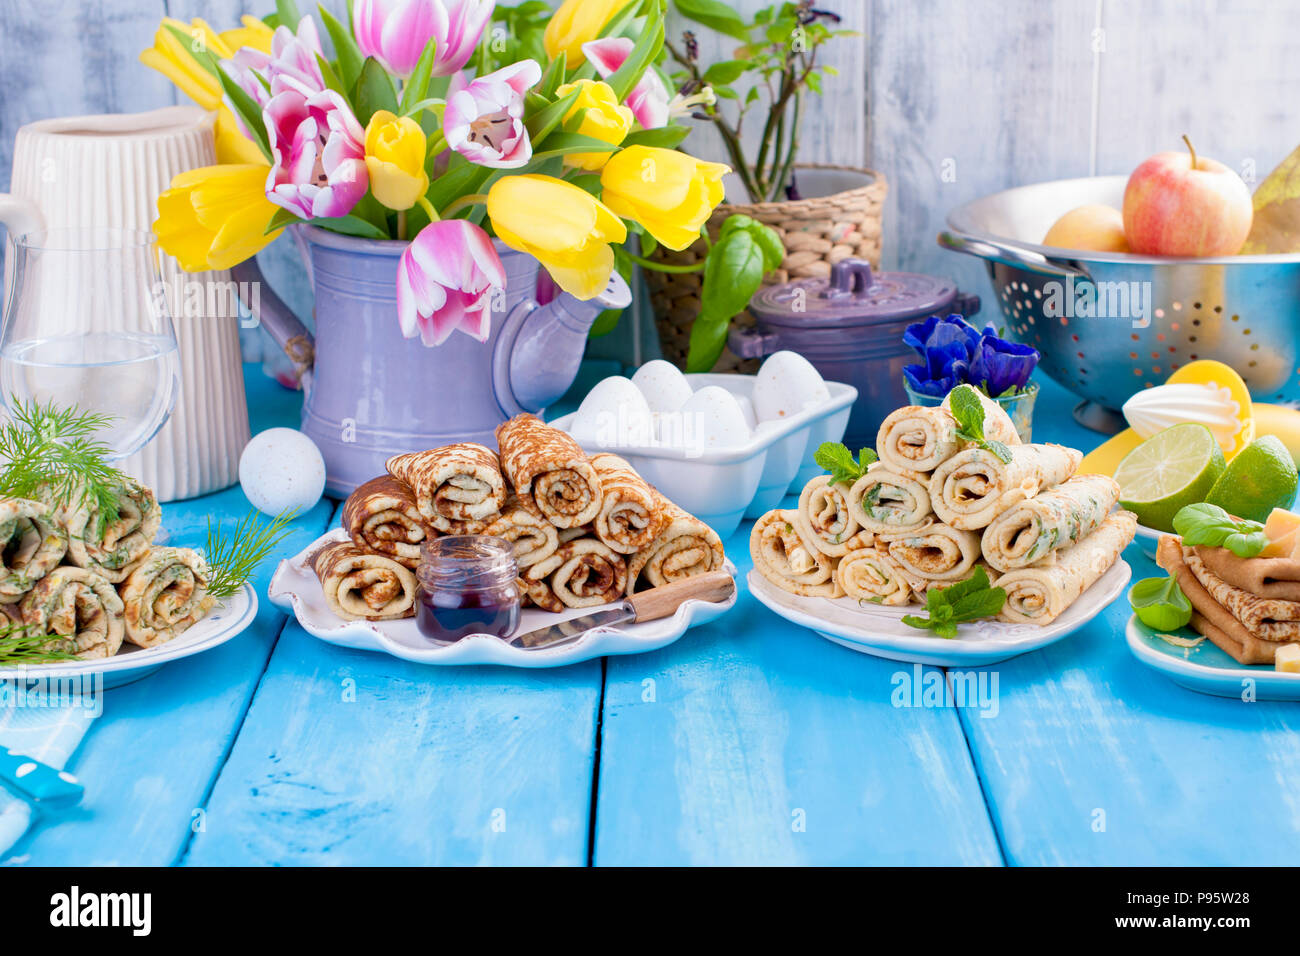 Many pancakes with different fillings and flavors. Delicious traditional Russian food in the spring. Homemade baking. Flowers and breakfast. Copy space - Stock Image